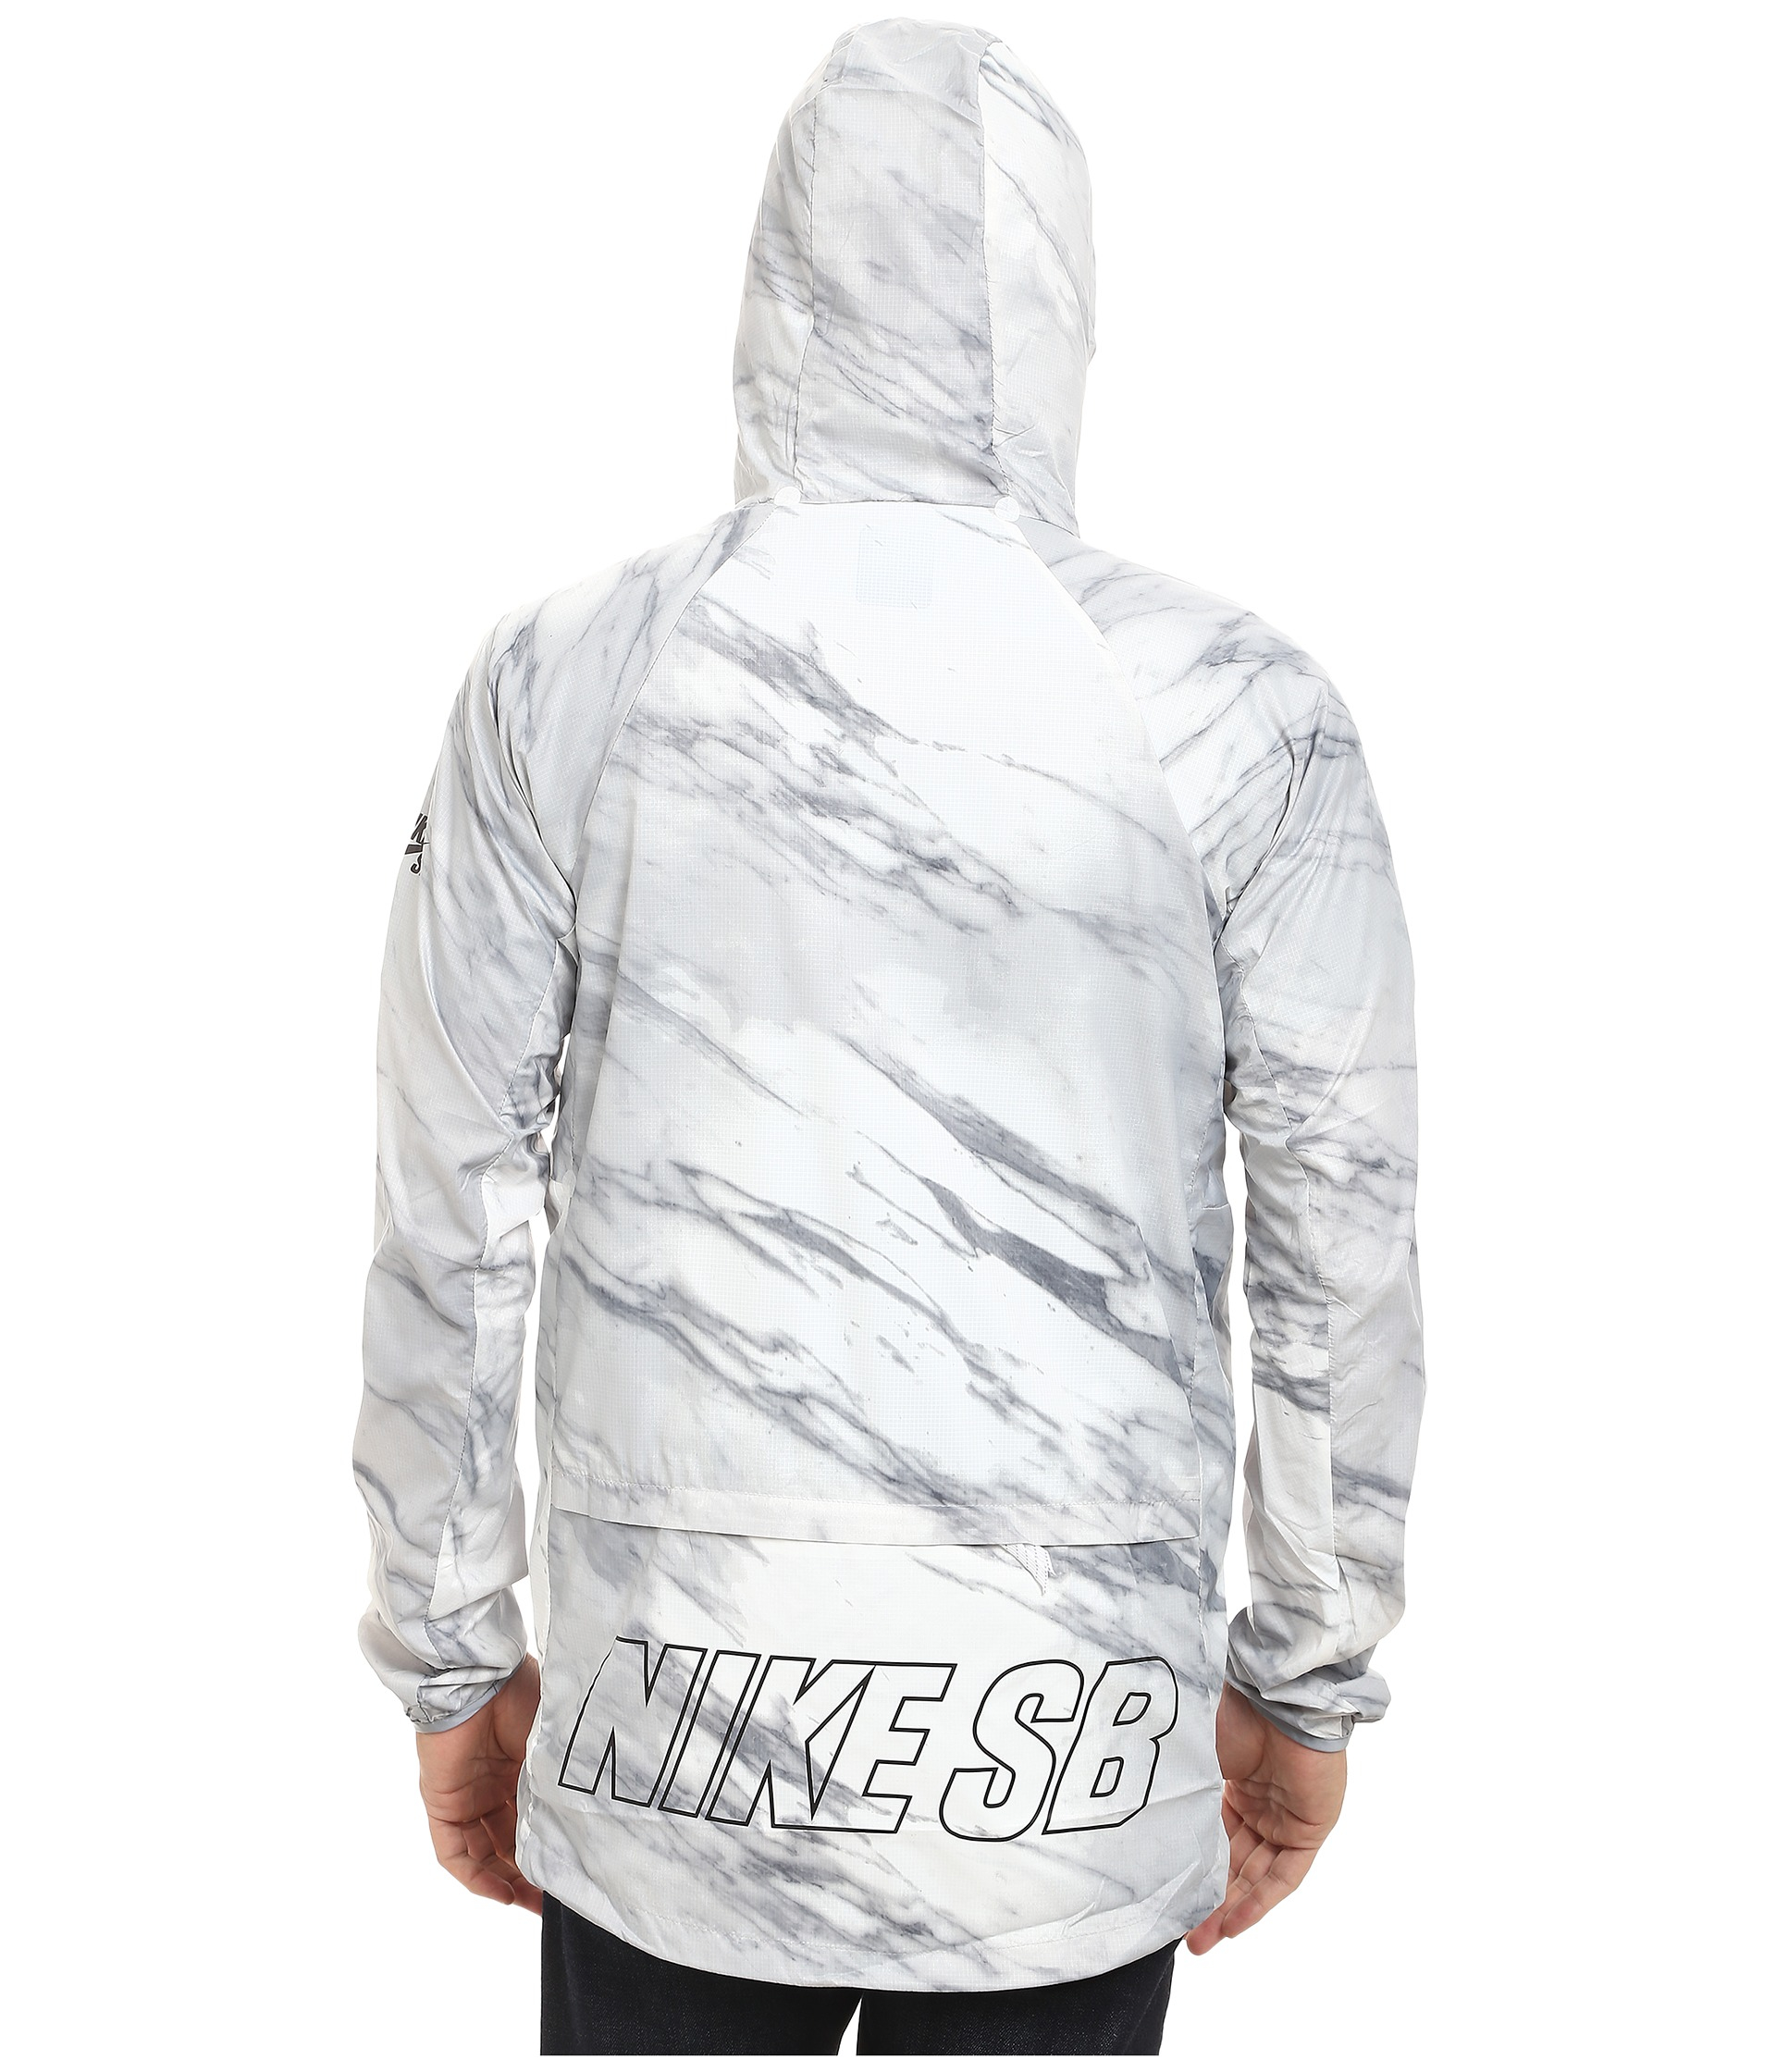 latest design fast delivery hot sale Sb Steele Light Weight Marble Jacket